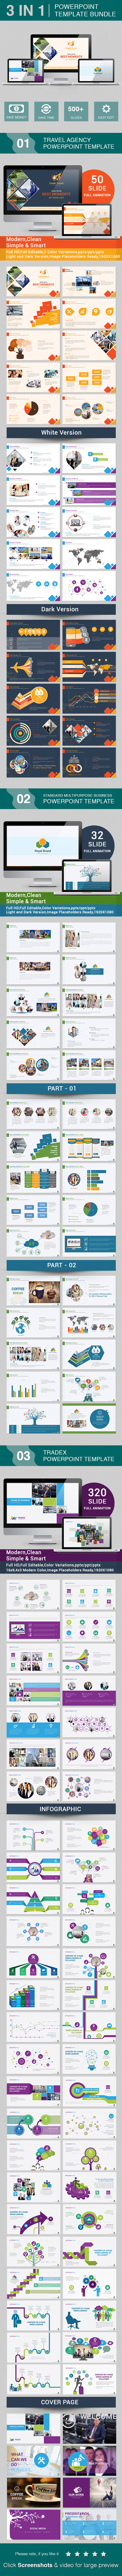 GraphicRiver PowerPoint Bundle Template Volume 1 10681300